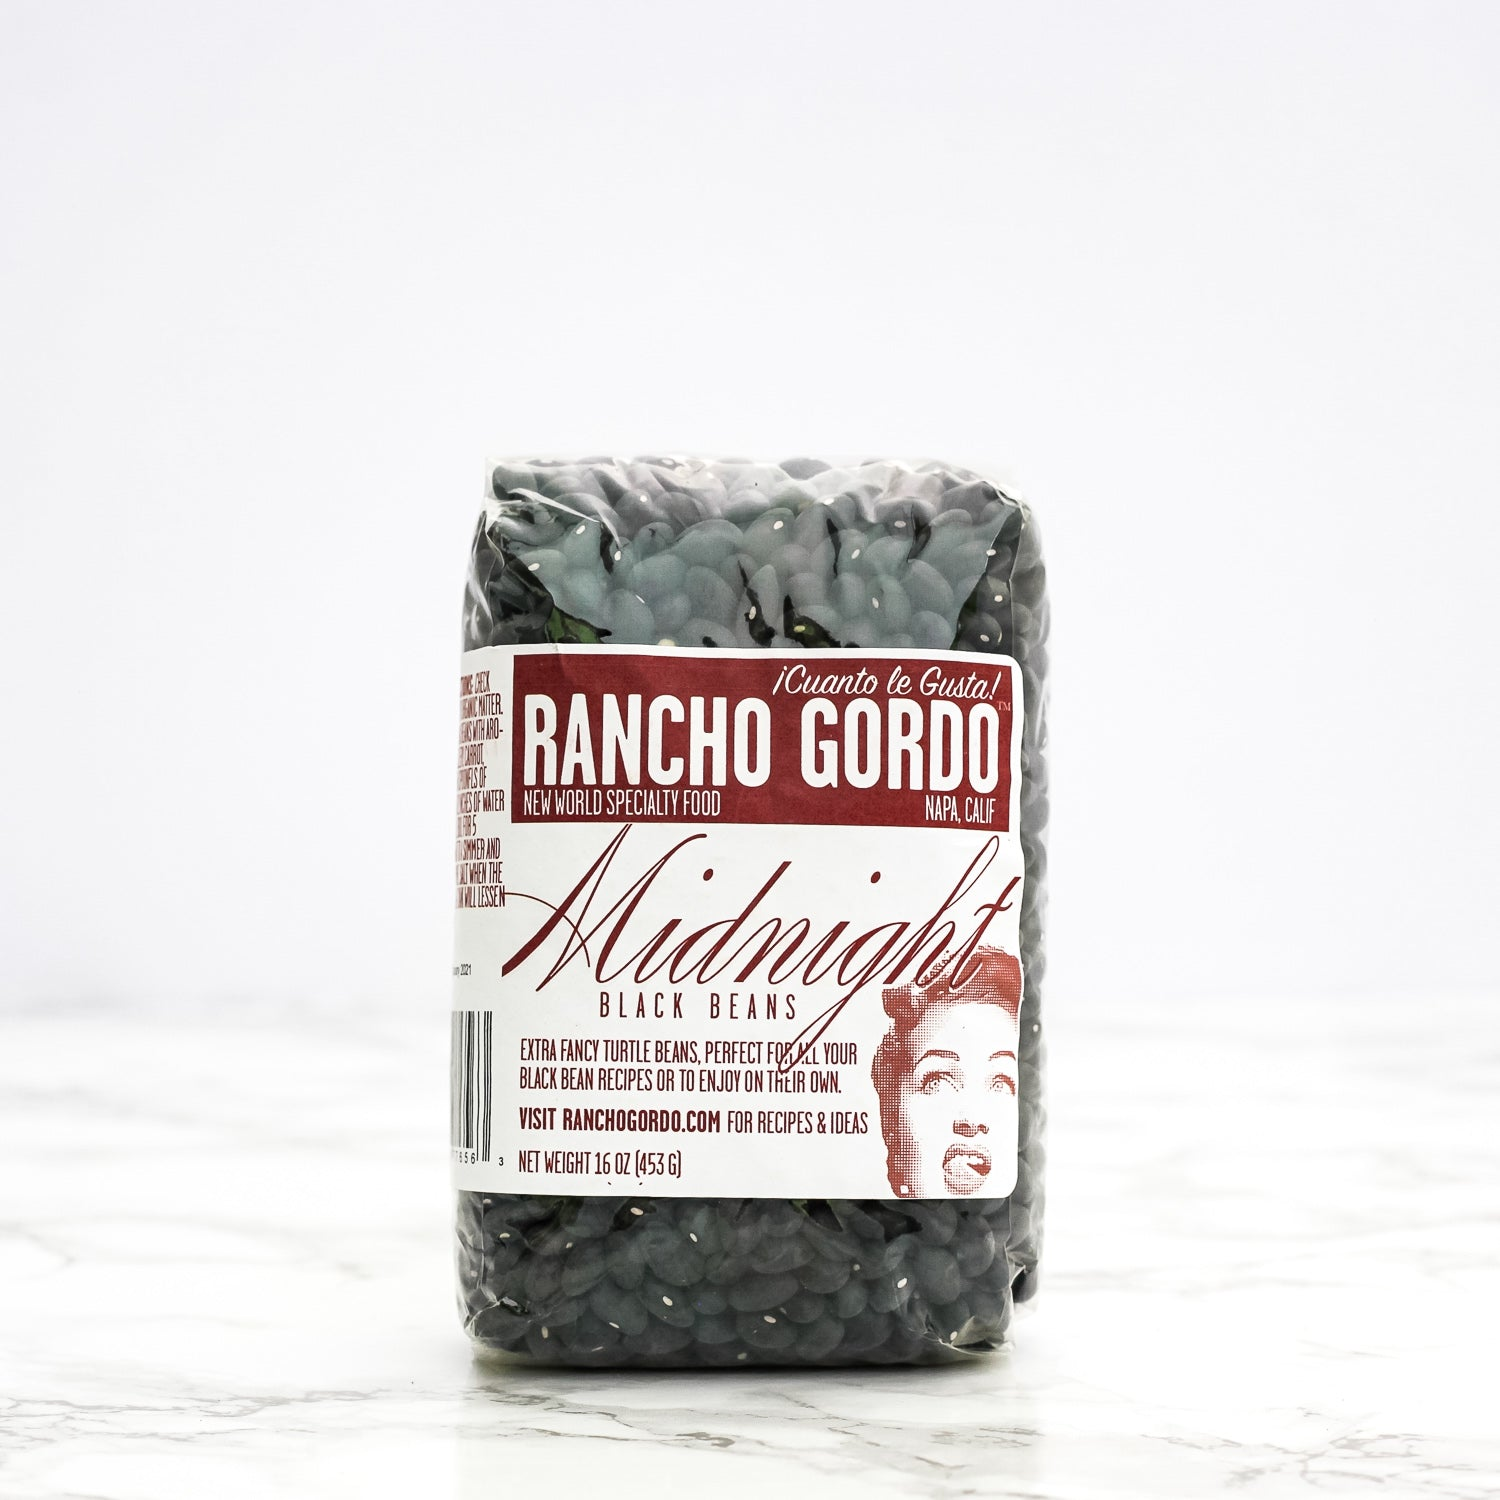 Rancho Gordo - Midnight Black Beans - The Foodocracy